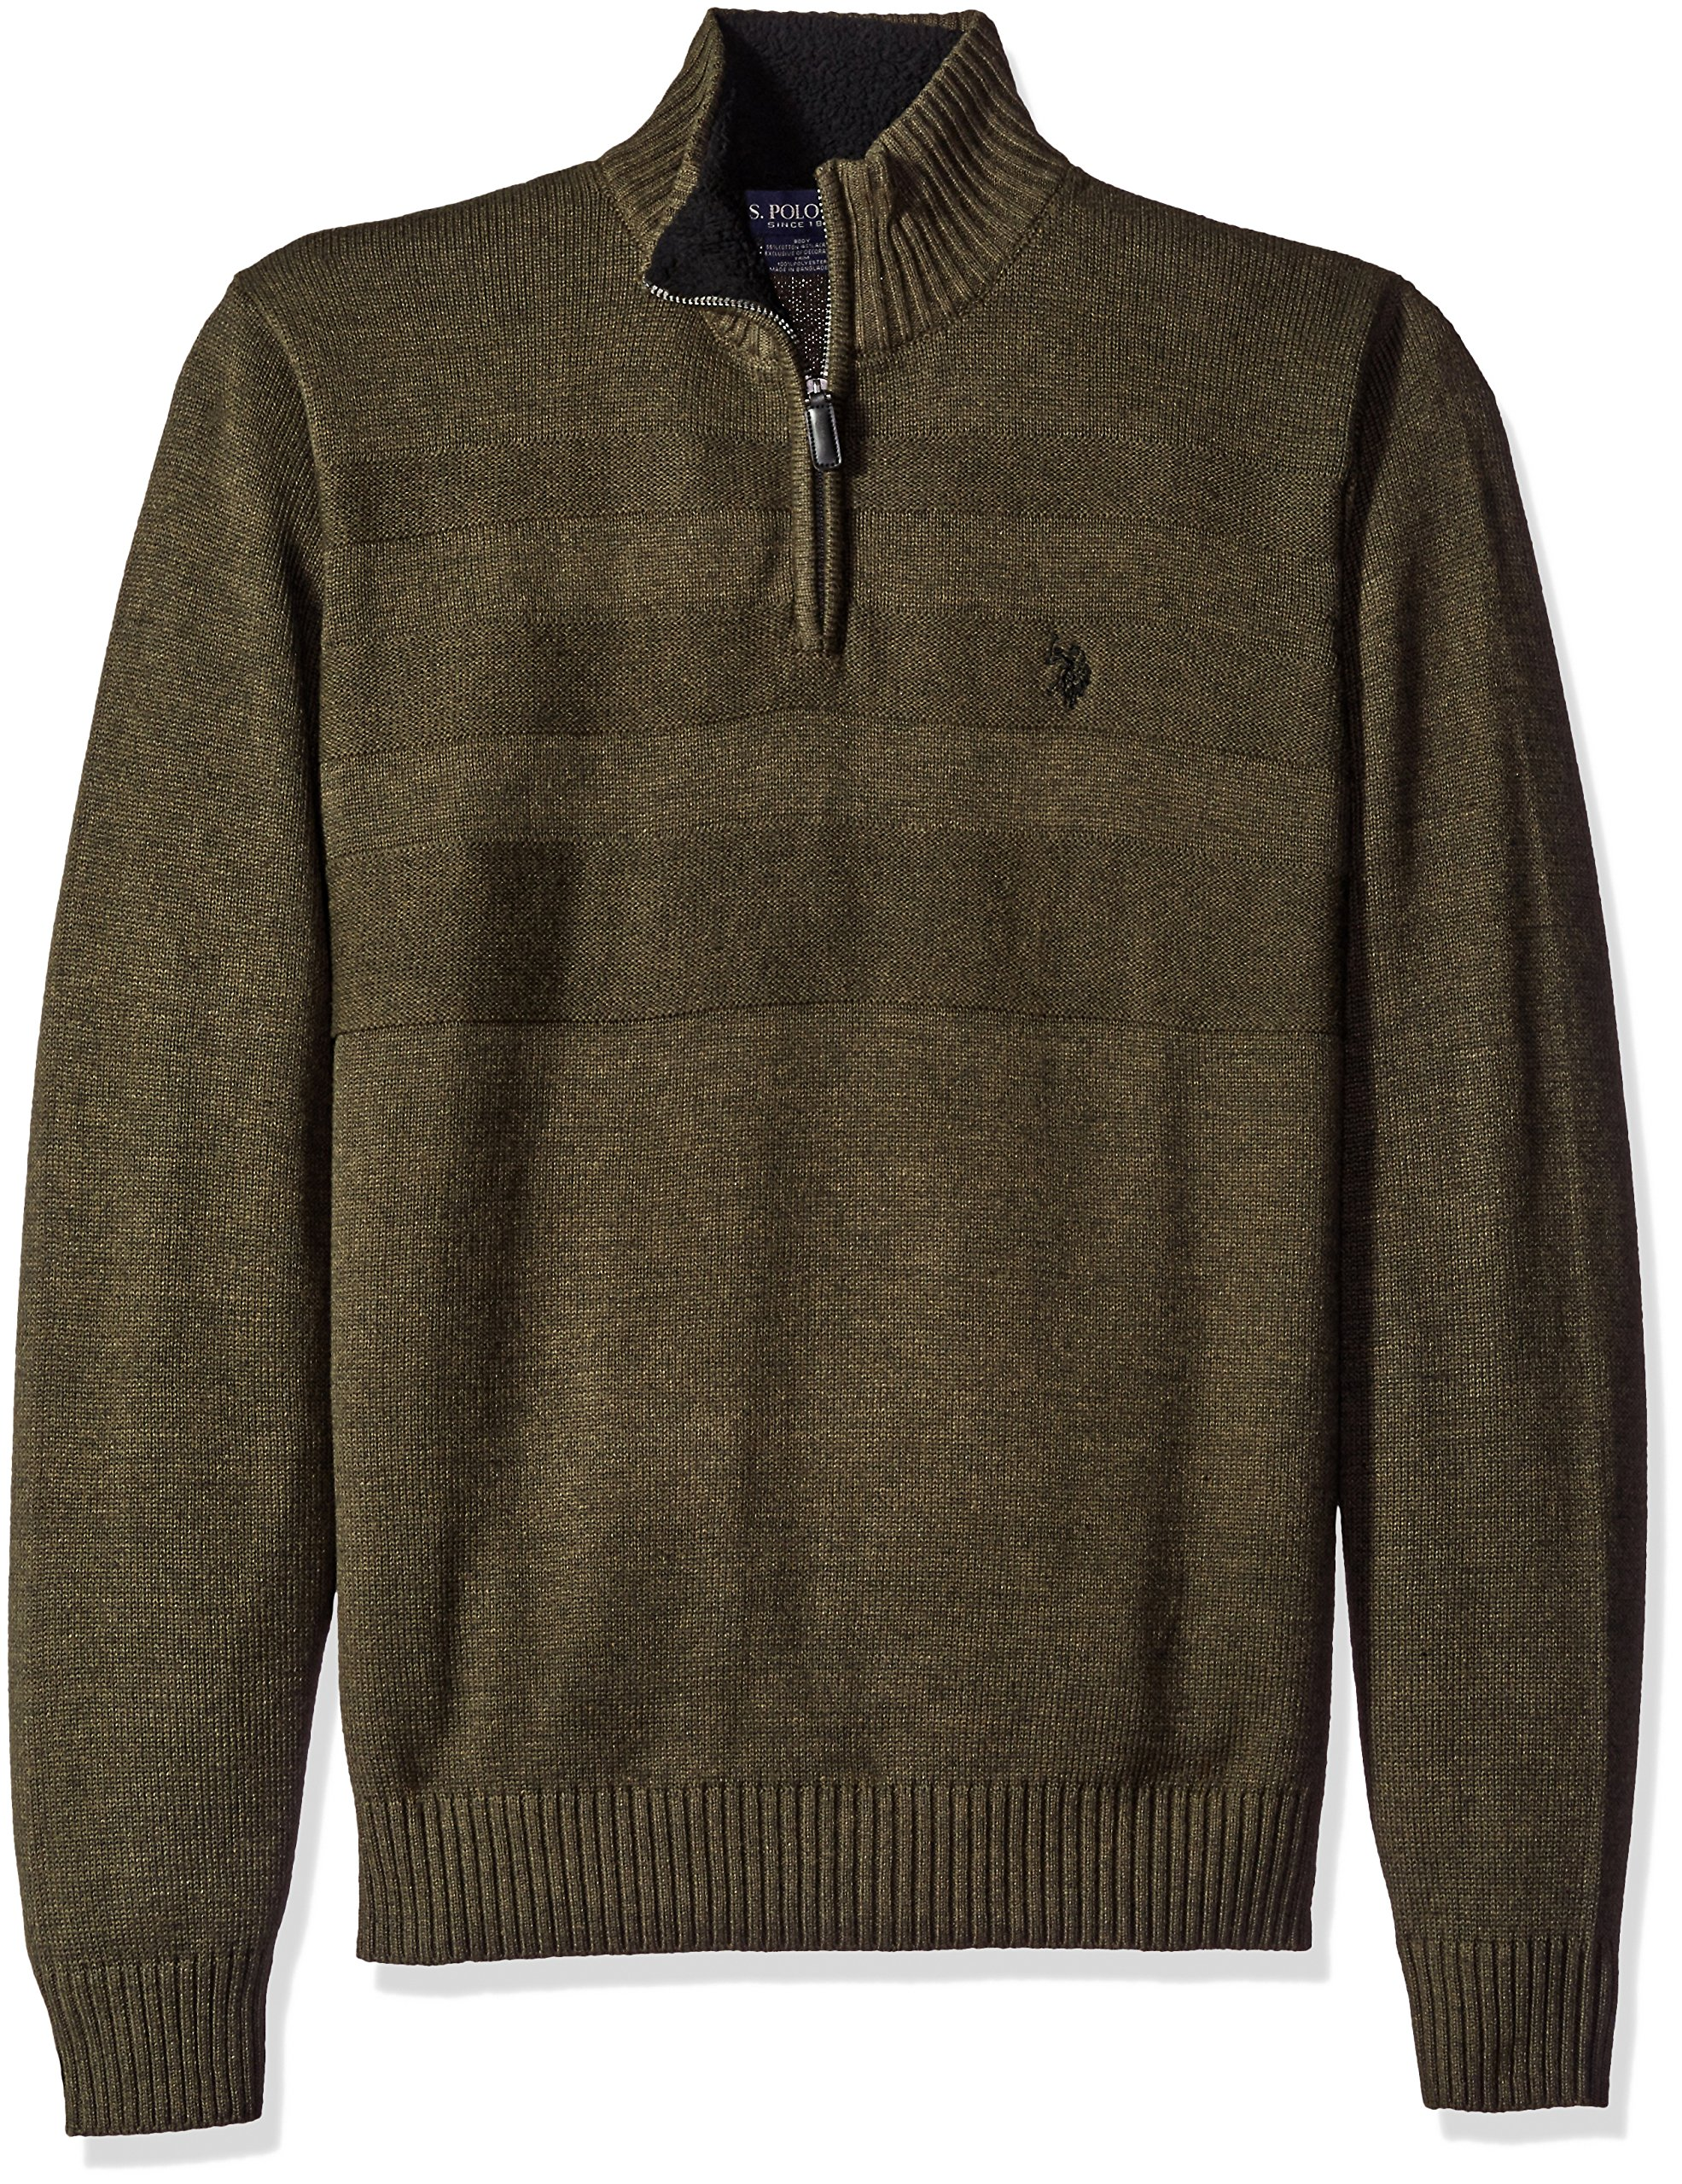 U.S. Polo Assn. Men's Textured Chest 1/4 Zip Sweater, Parsley Heather, X-Large